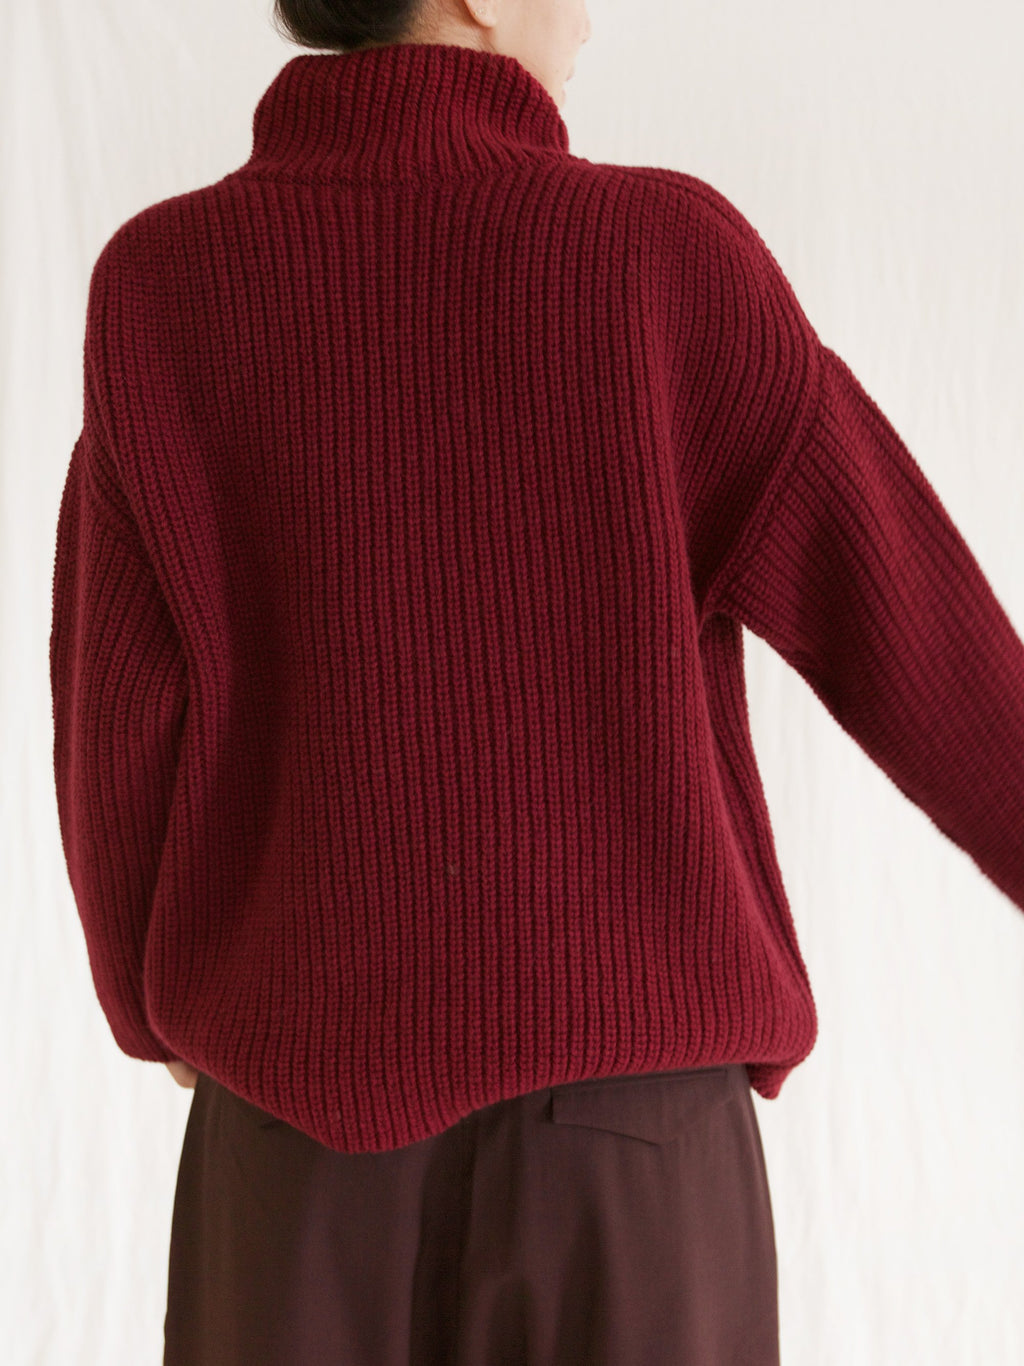 Namu Shop - Ichi Antiquites Wool Turtleneck Sweater